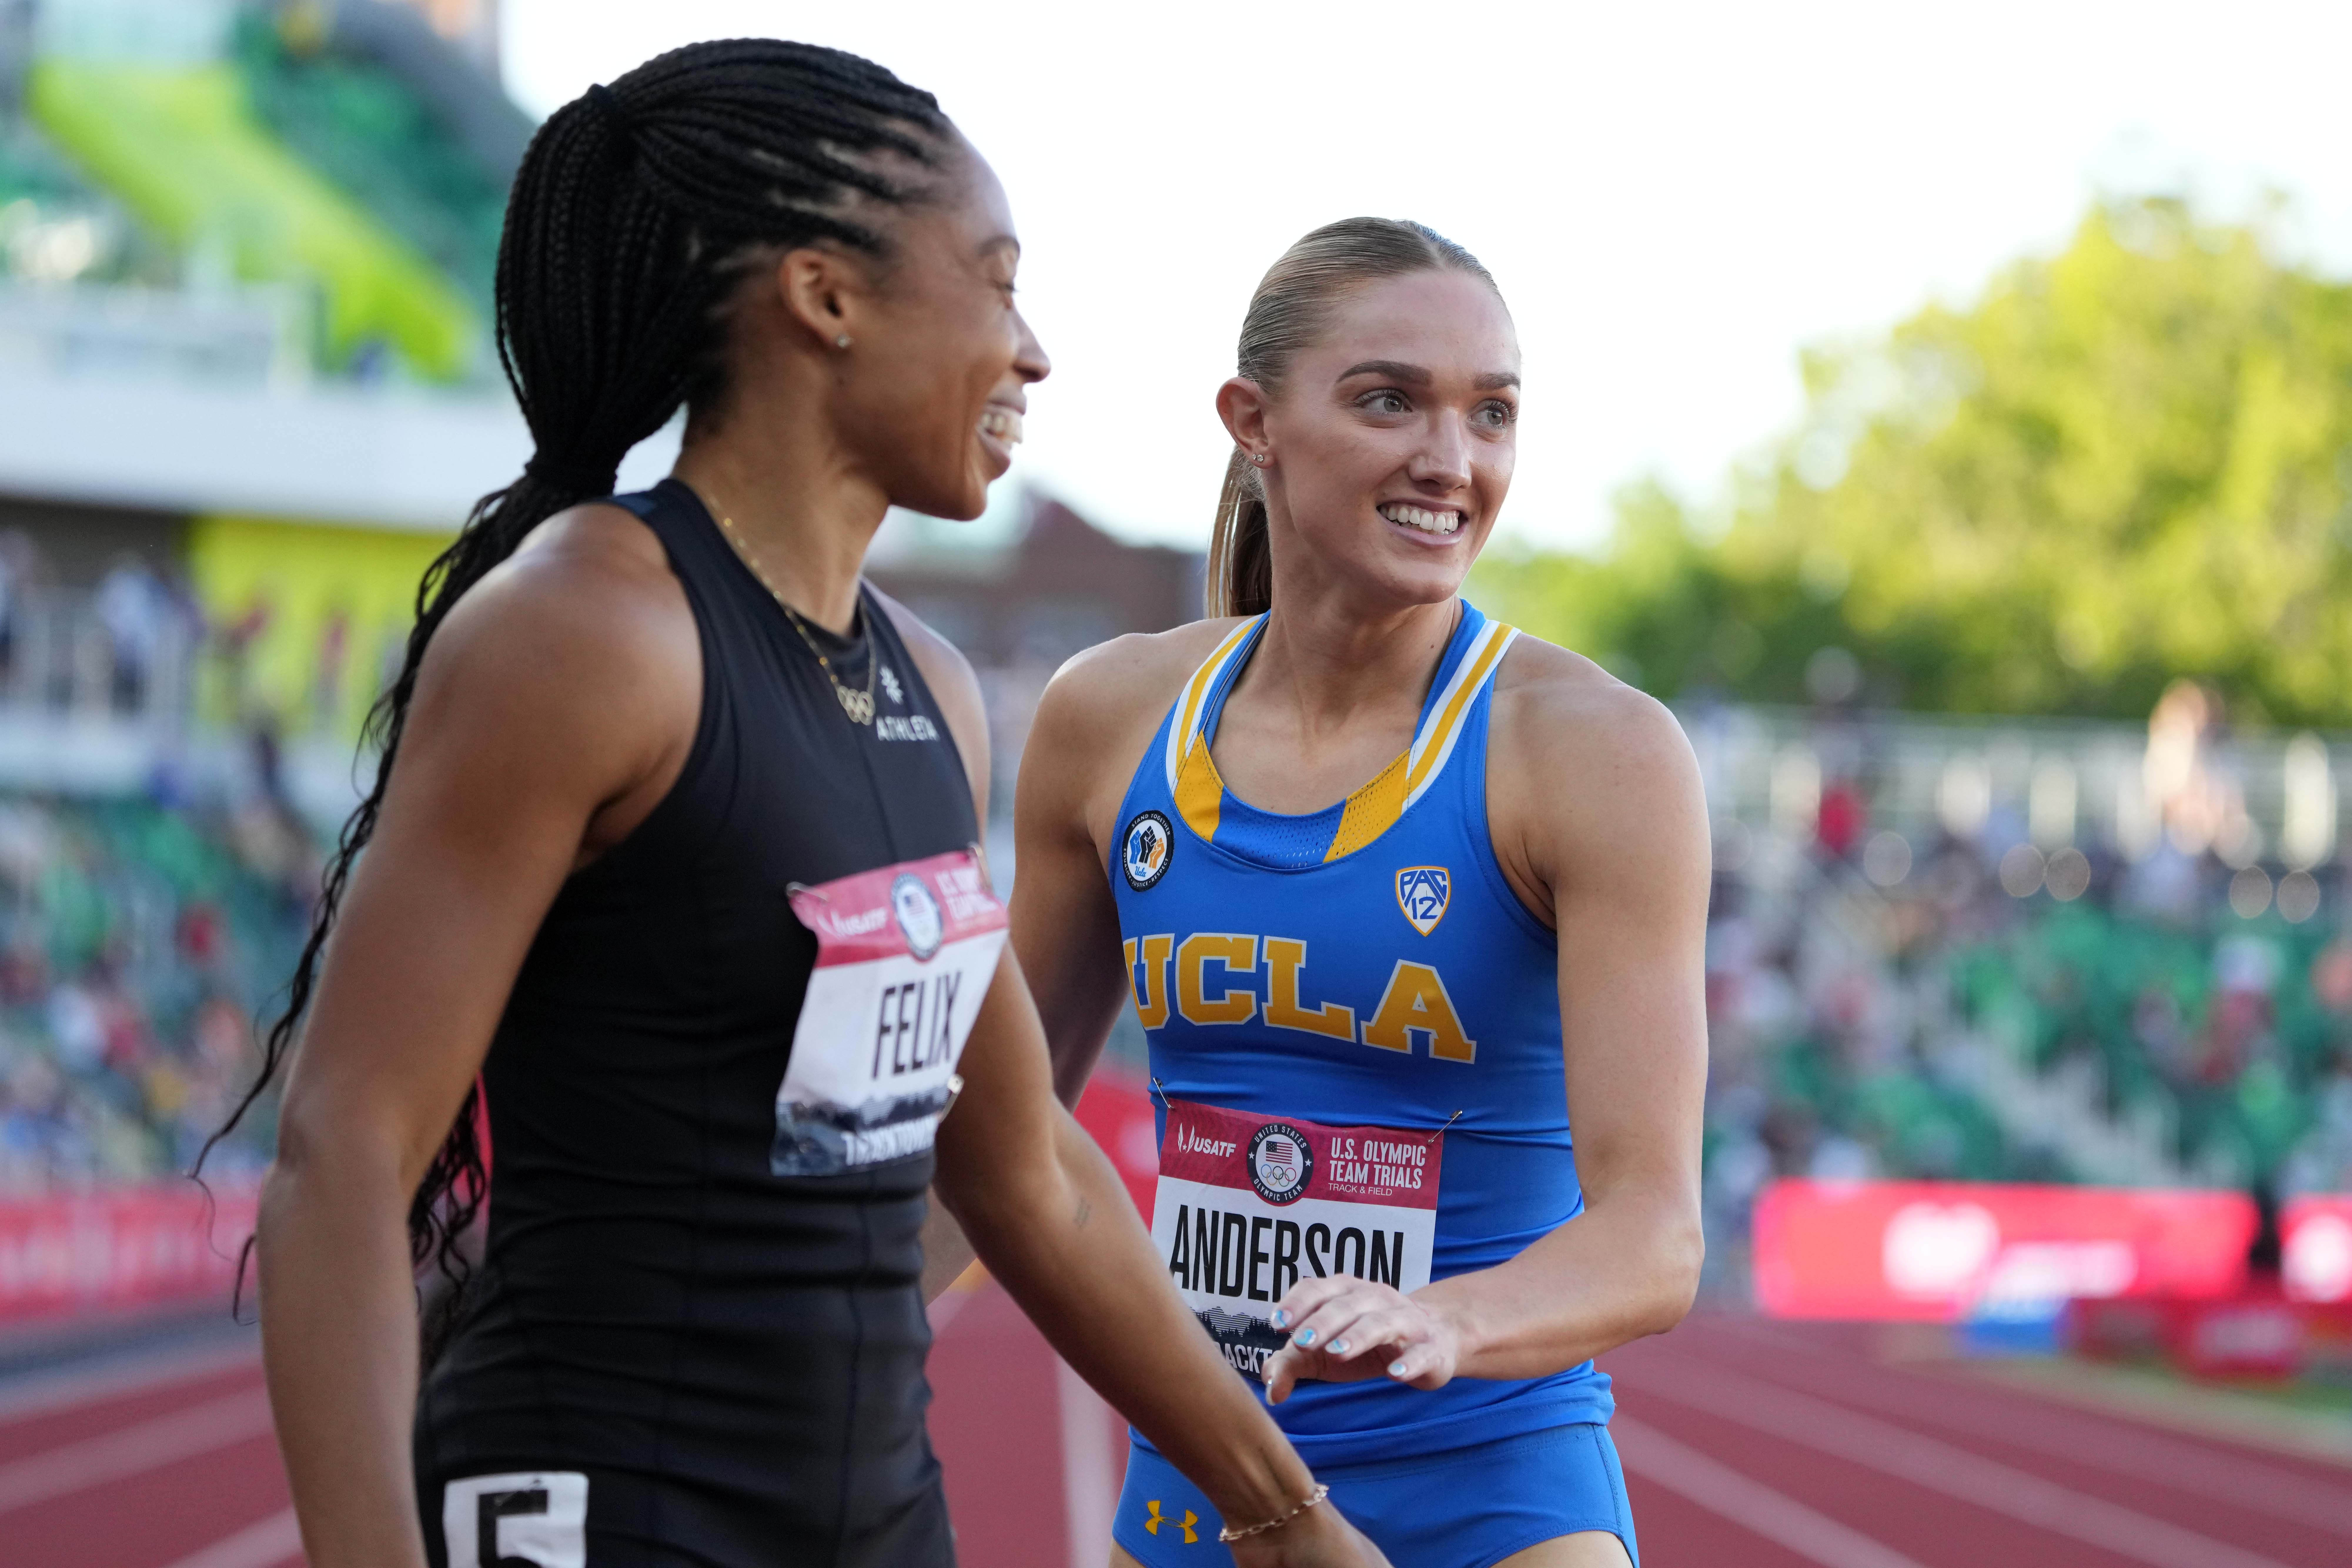 Jun 19, 2021; Eugene, OR, USA; Shae Anderson of UCLA (right) and Allyson Felix react after a women's 400m semifinal eduring the US Olympic Team Trials at Hayward Field. Mandatory Credit: Kirby Lee-USA TODAY Sports